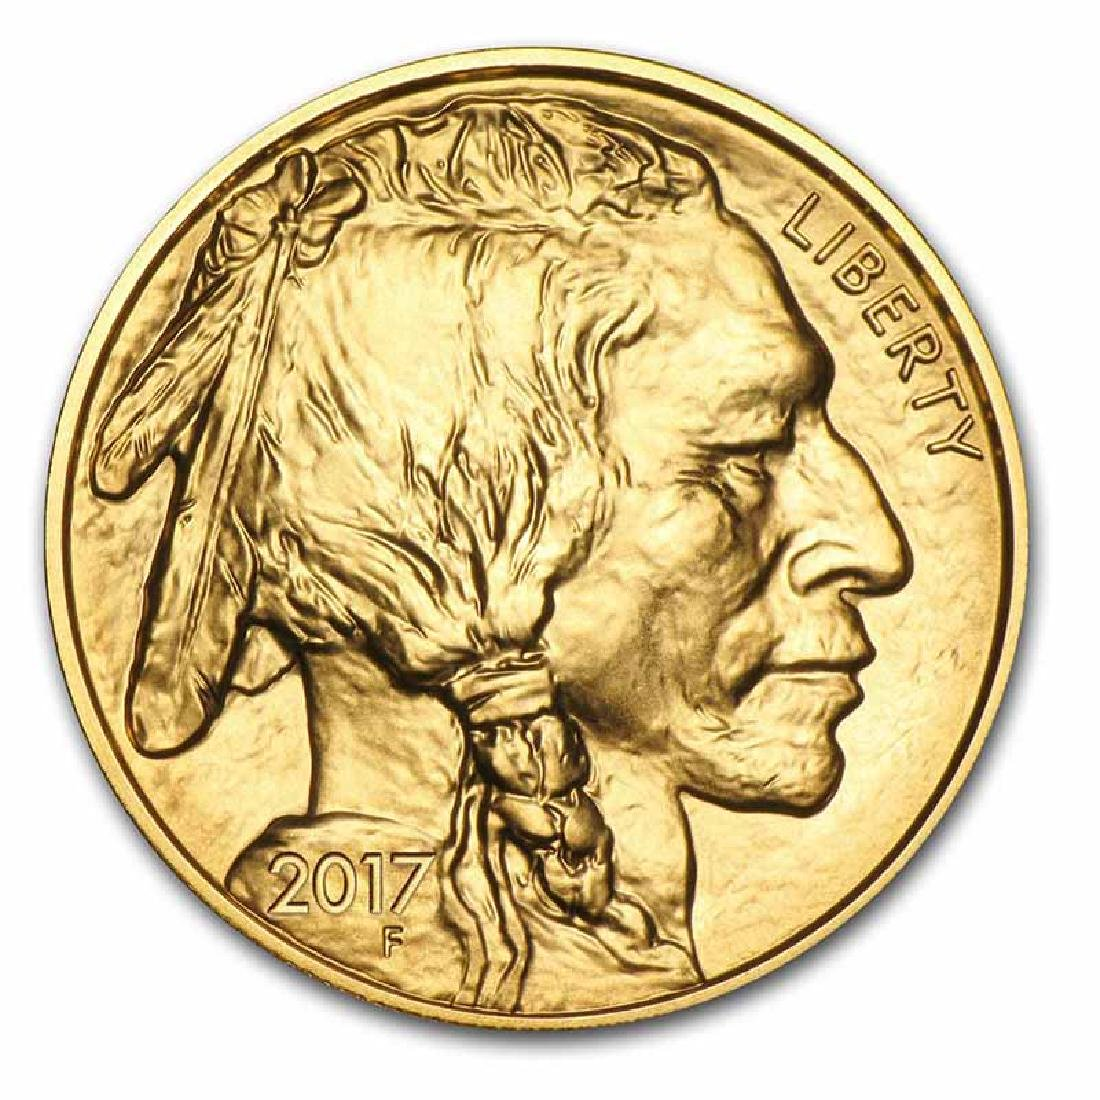 Uncirculated Gold Buffalo Coin One Ounce 2017